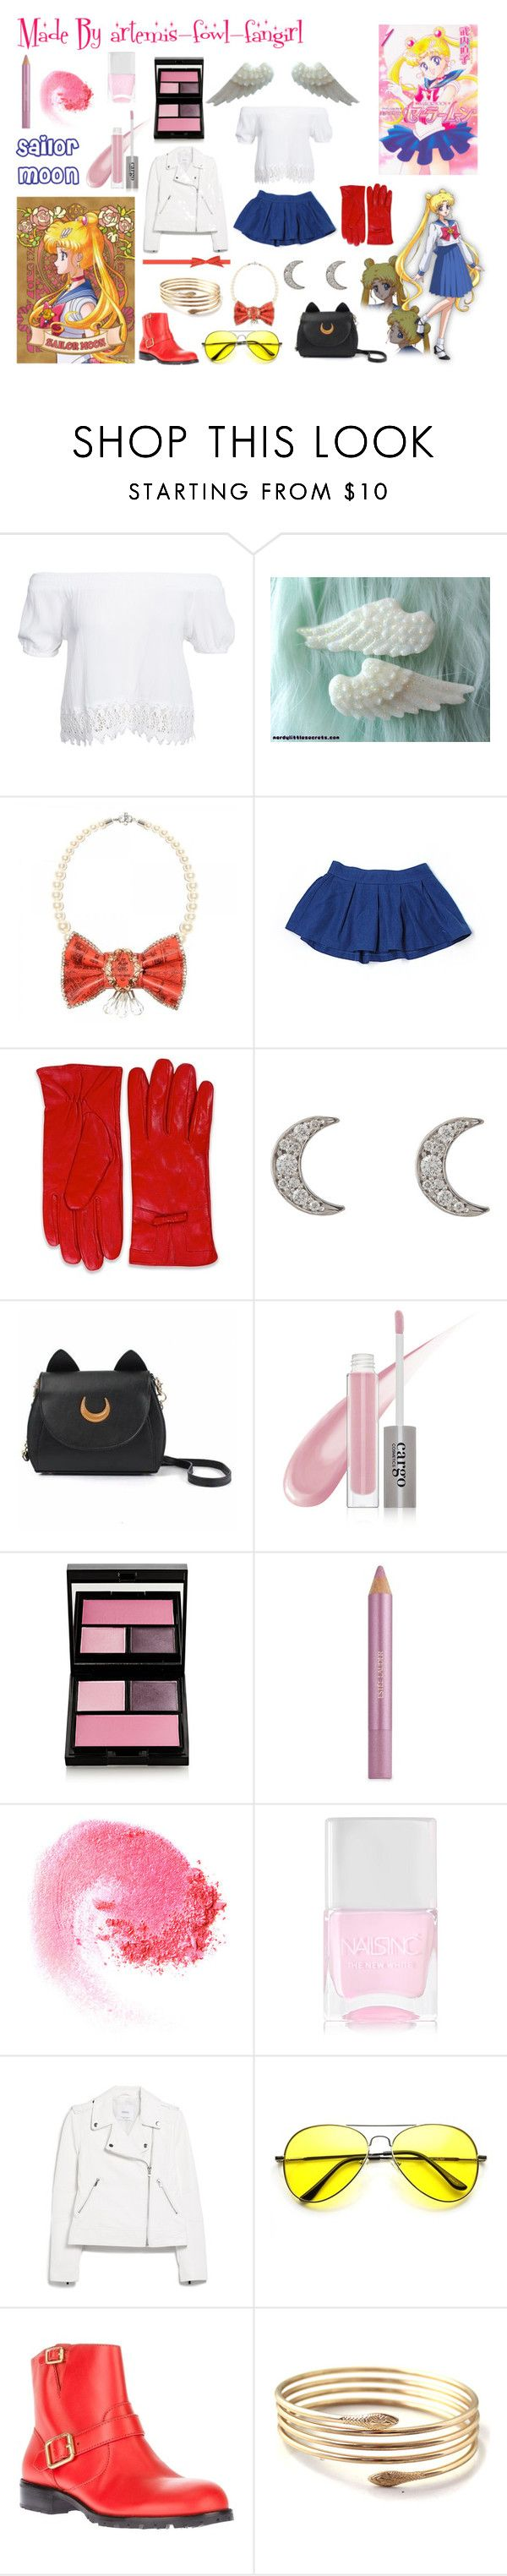 """""""Sailor Moon"""" by polyvore-character-outfits ❤ liked on Polyvore featuring Boohoo, Abercrombie & Fitch, Finn, CARGO, Surratt, Estée Lauder, NARS Cosmetics, Nails Inc., MANGO and Marc by Marc Jacobs"""